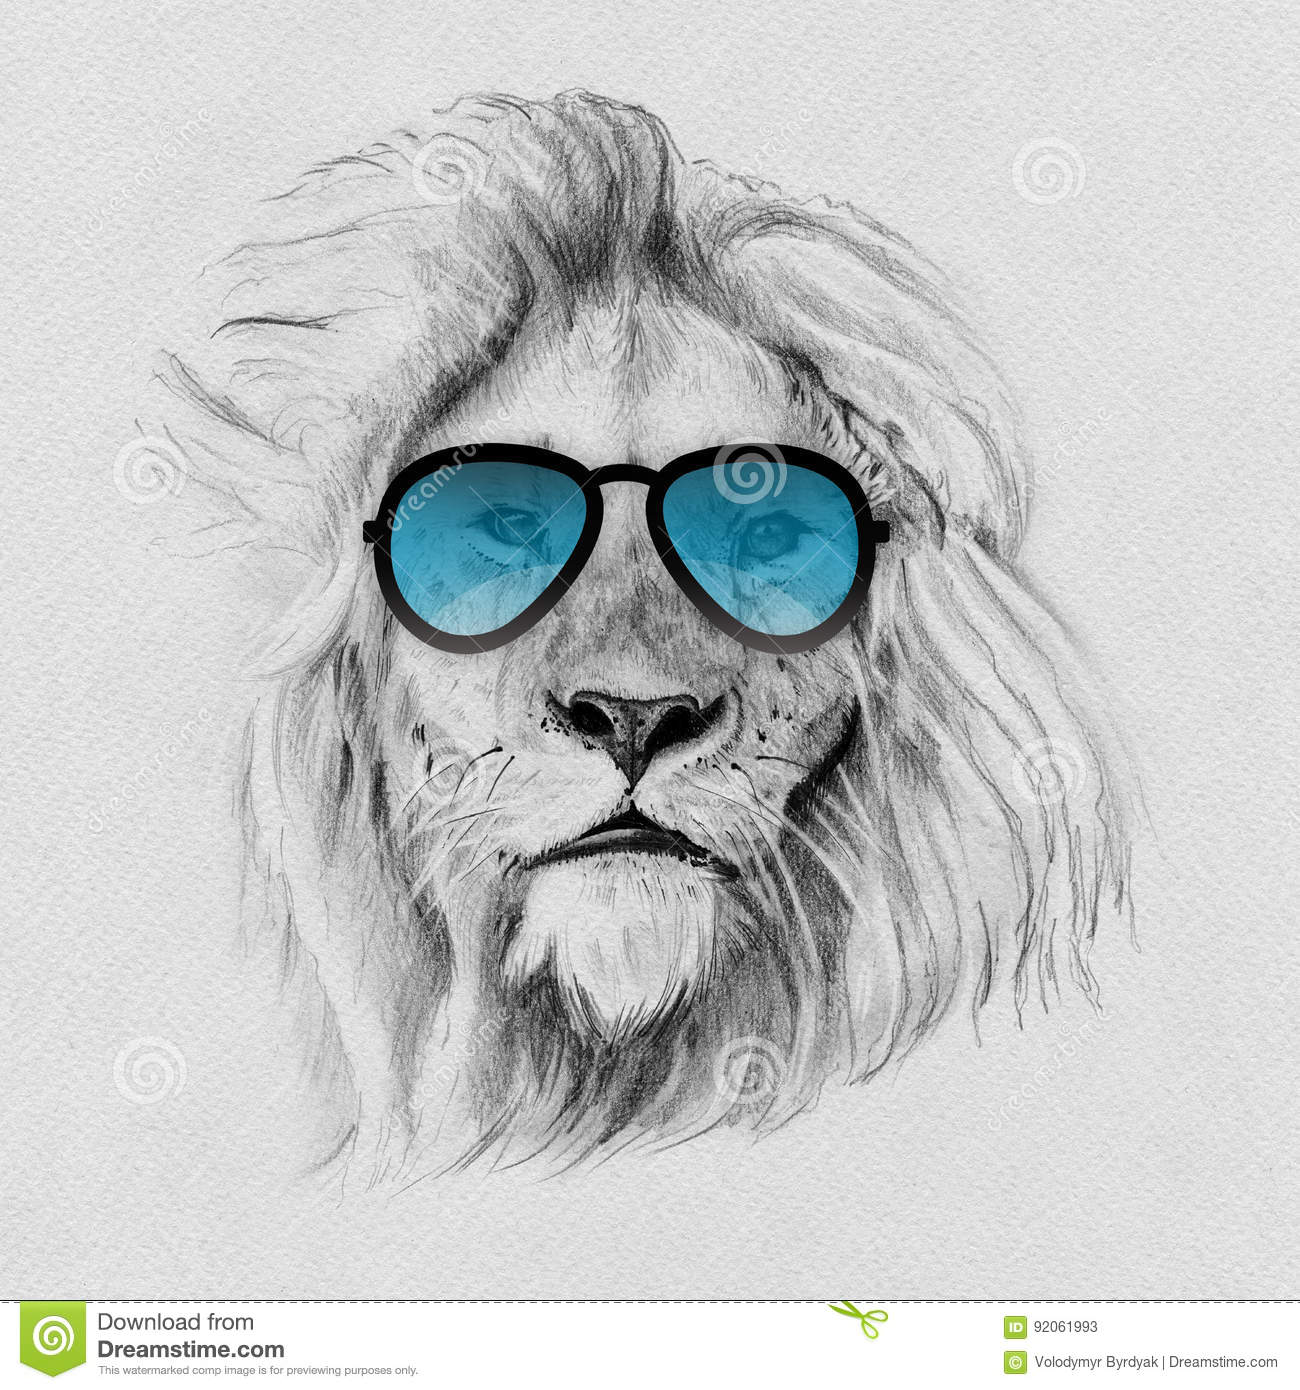 b3193be3601 Portrait of lion drawn by hand in pencil in sunglasses. Originals